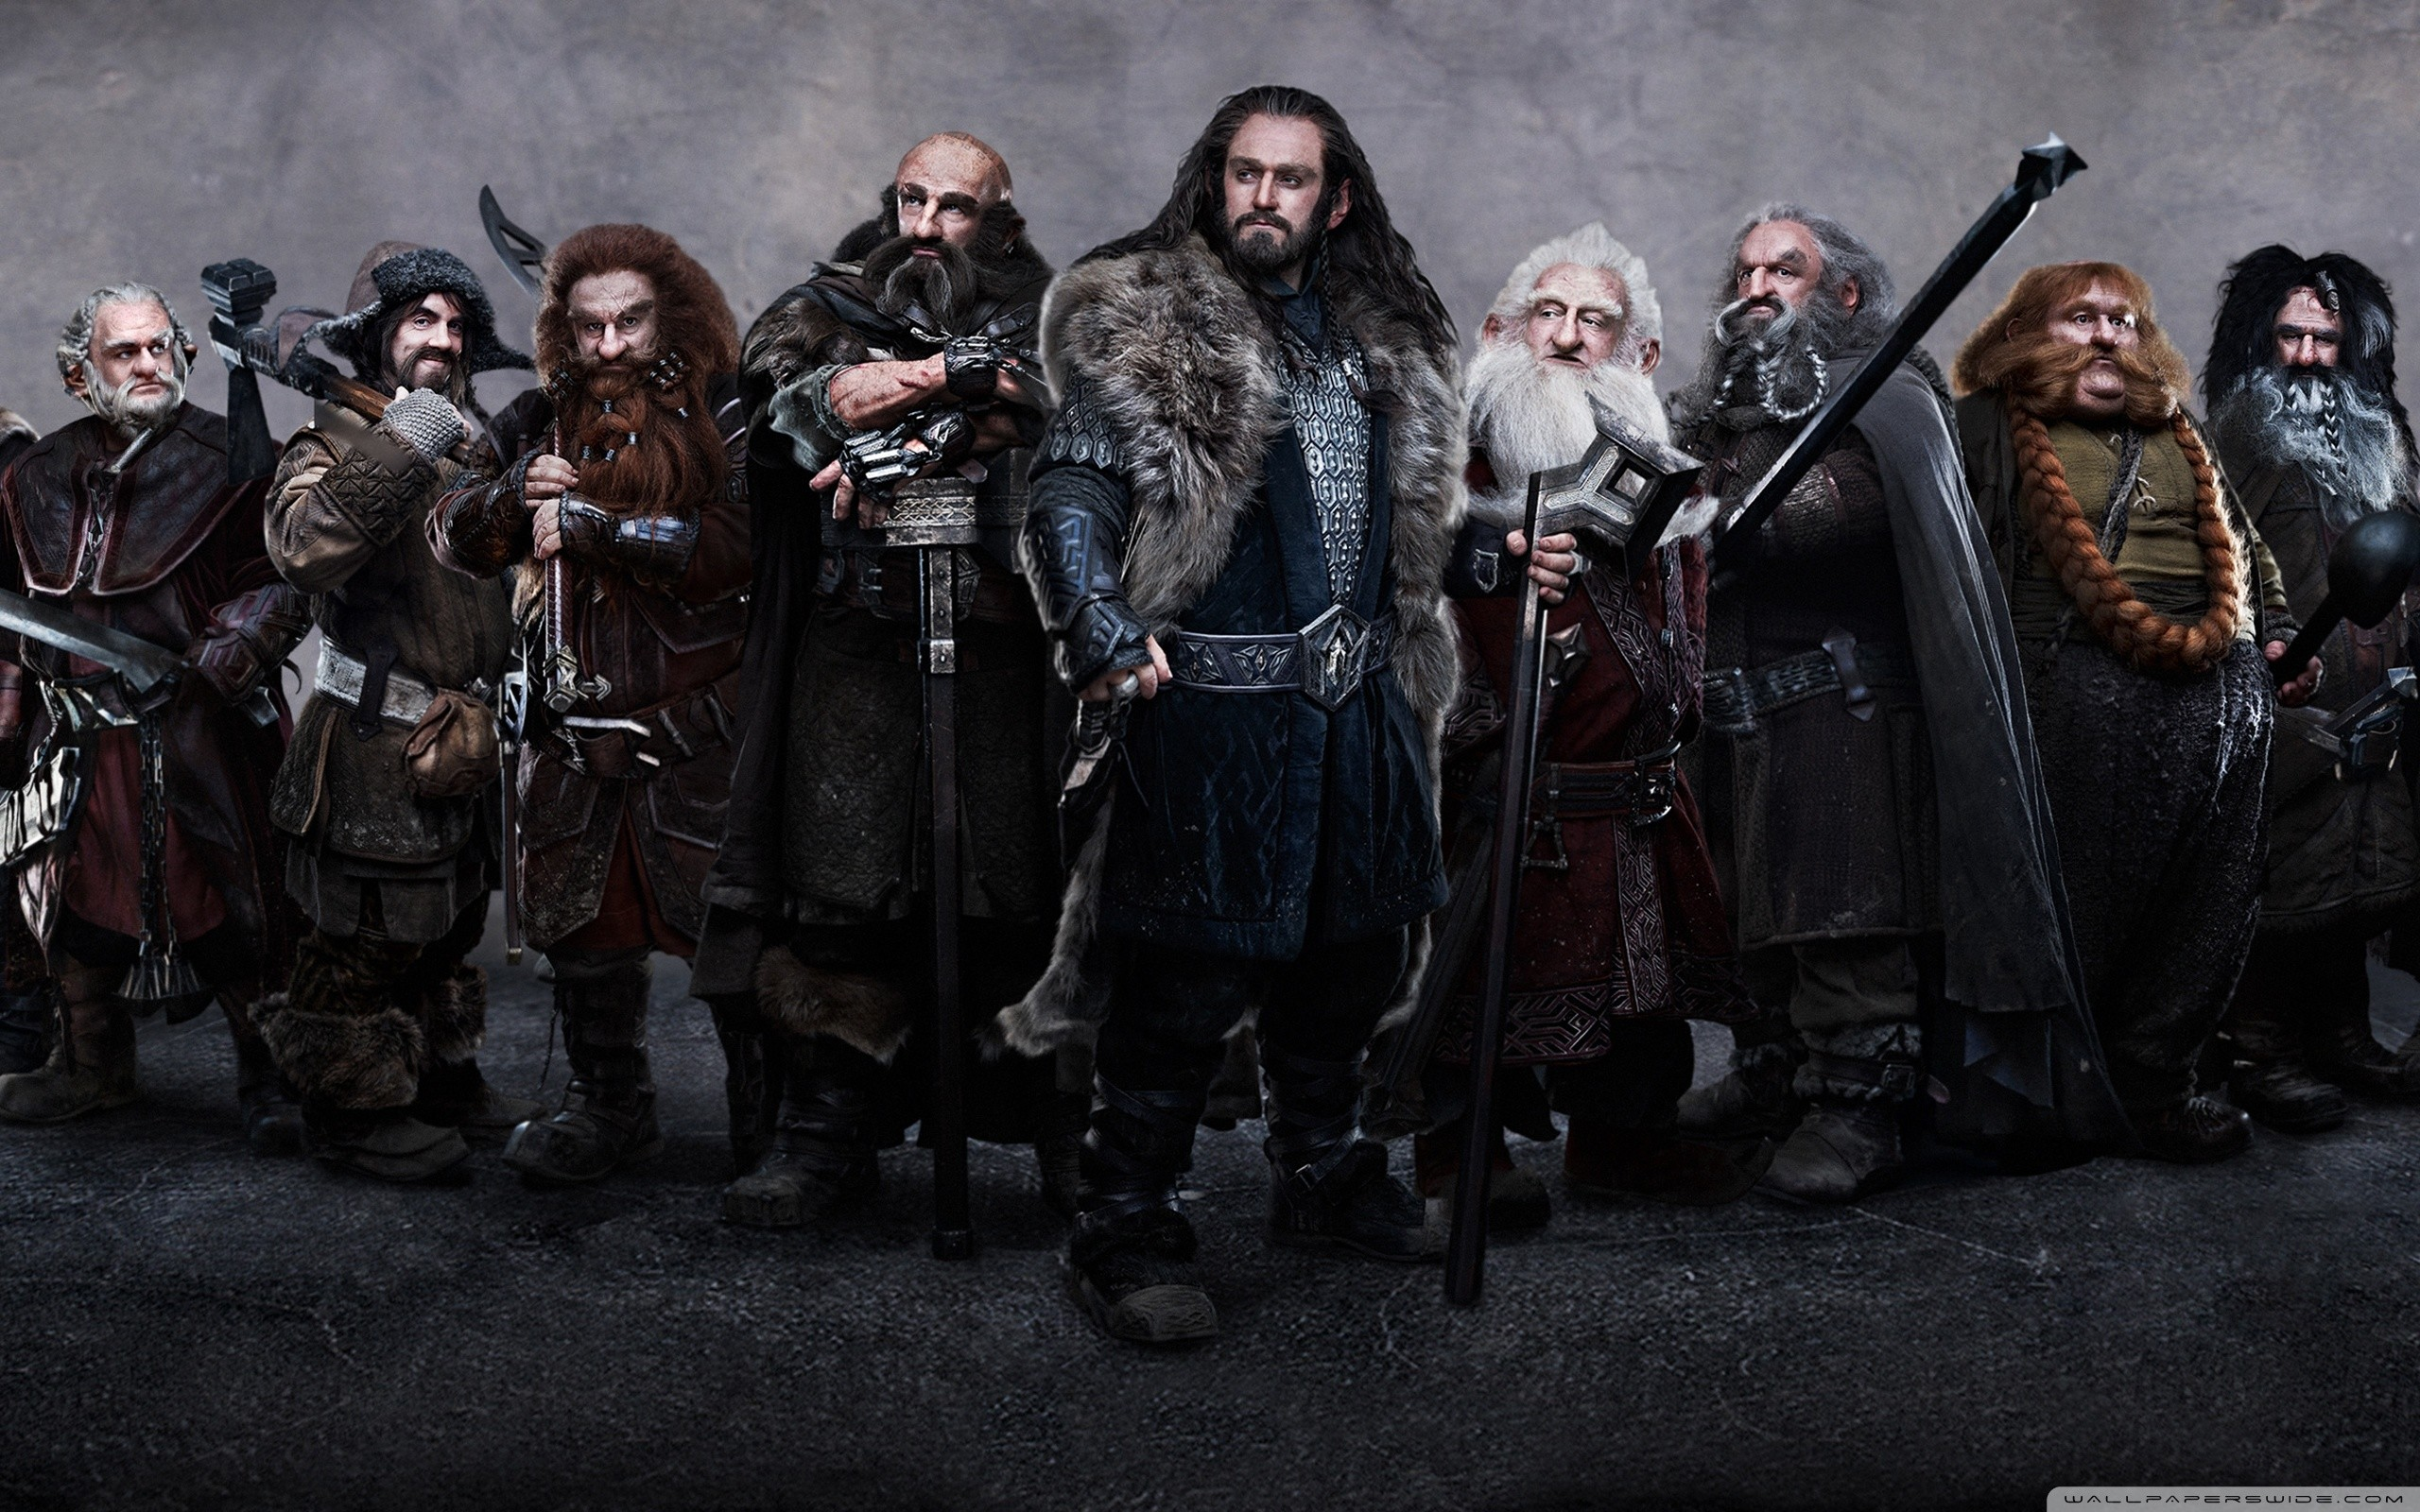 The Hobbit Wallpaper Images on